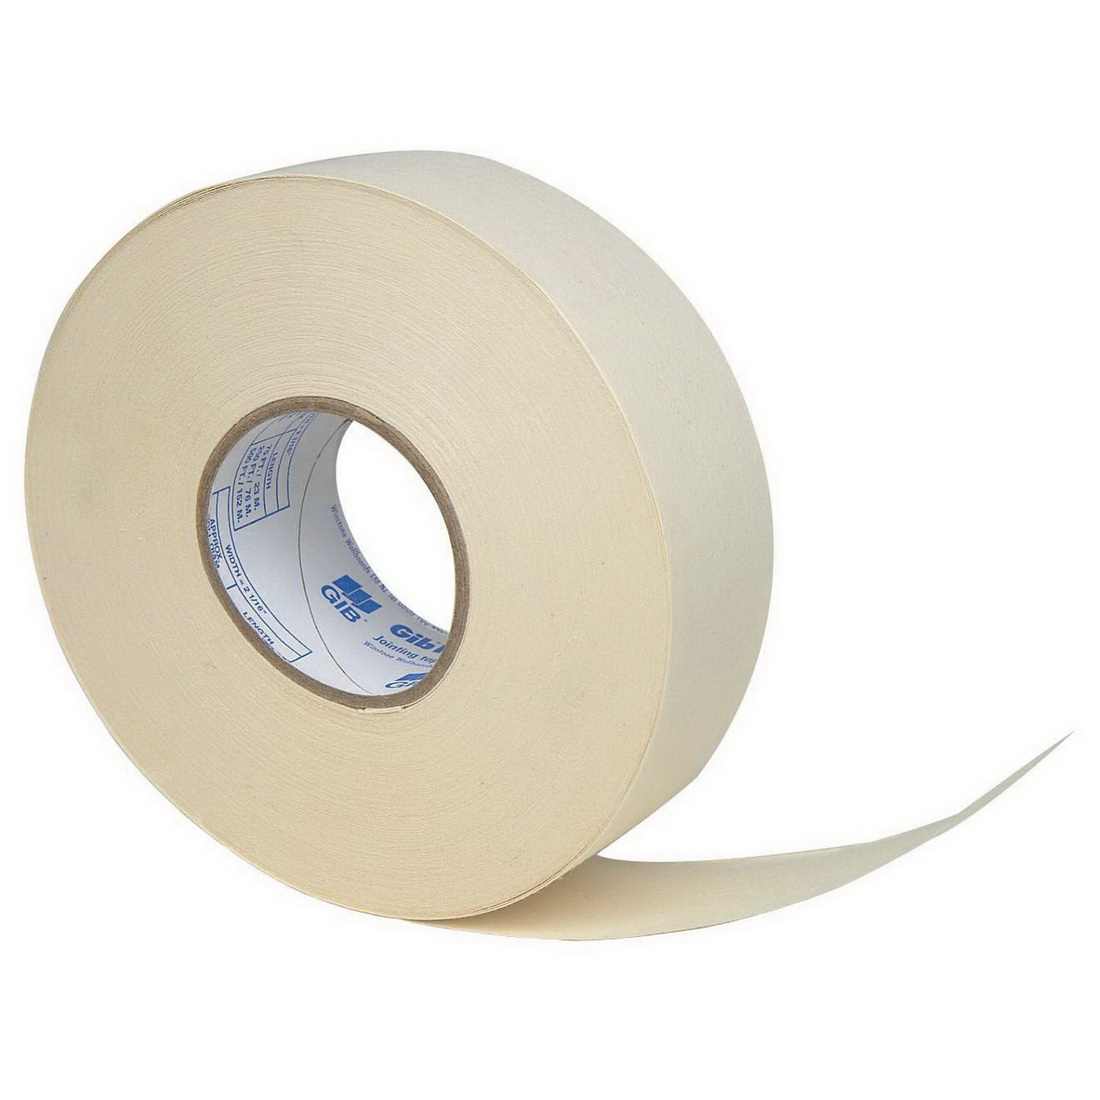 52mmx150m Roll Jointing Paper Tape